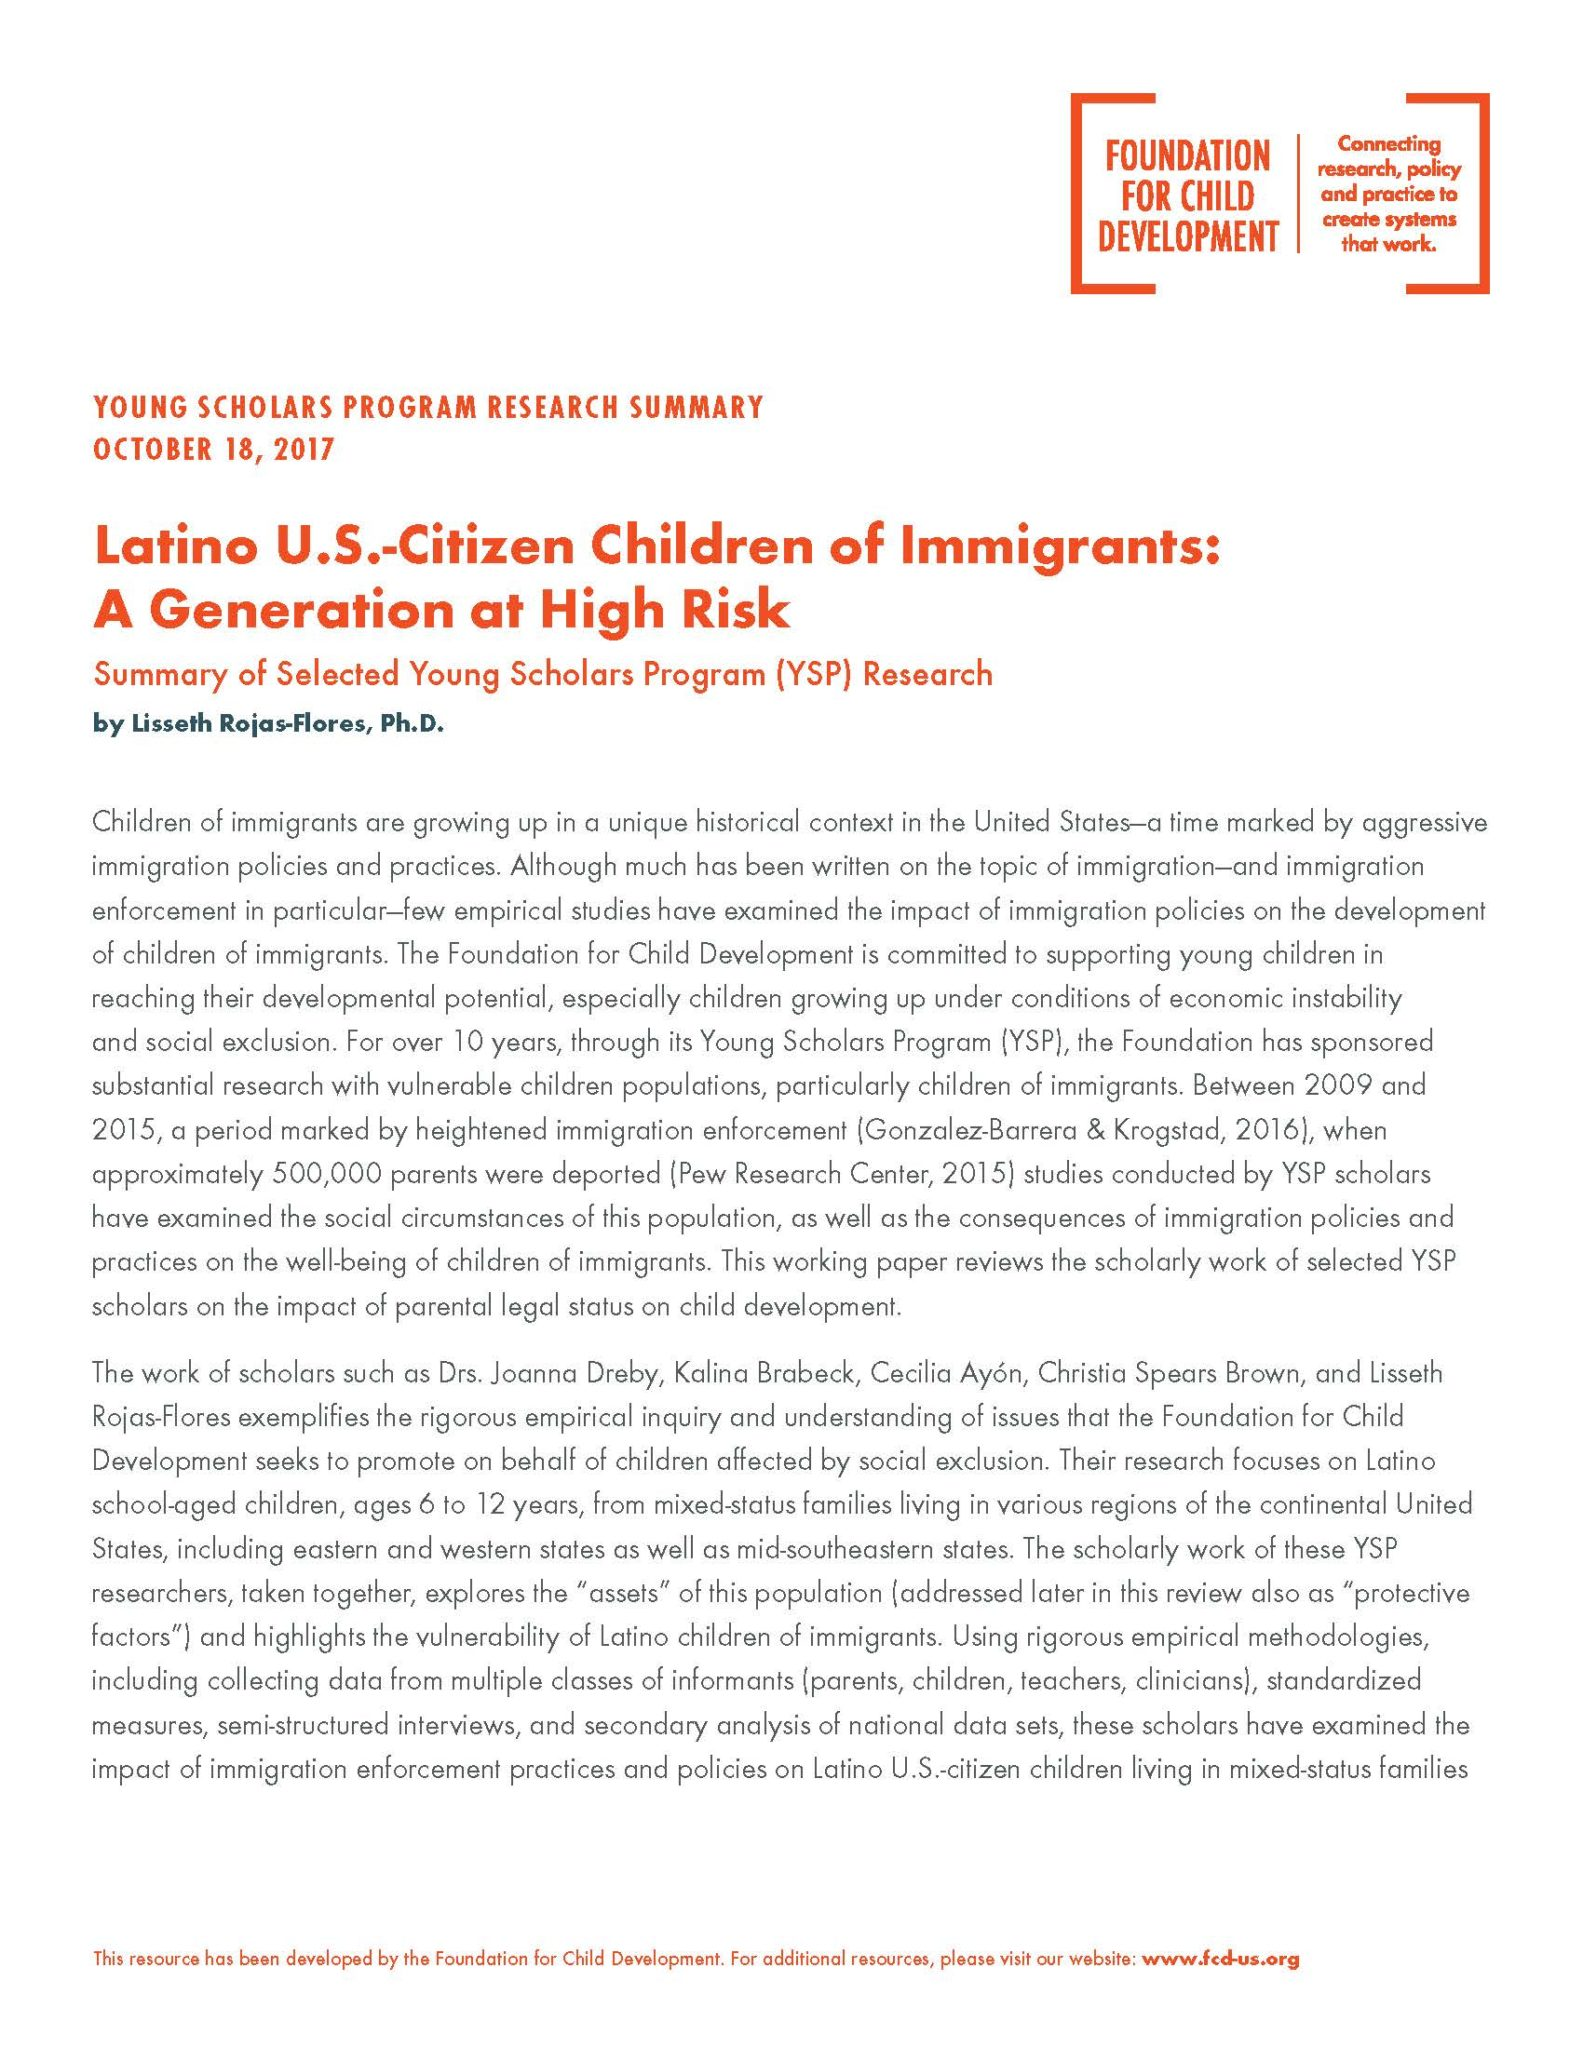 Preview: Latino US-Citizen Children of Immigrants: A Generation at High-Risk